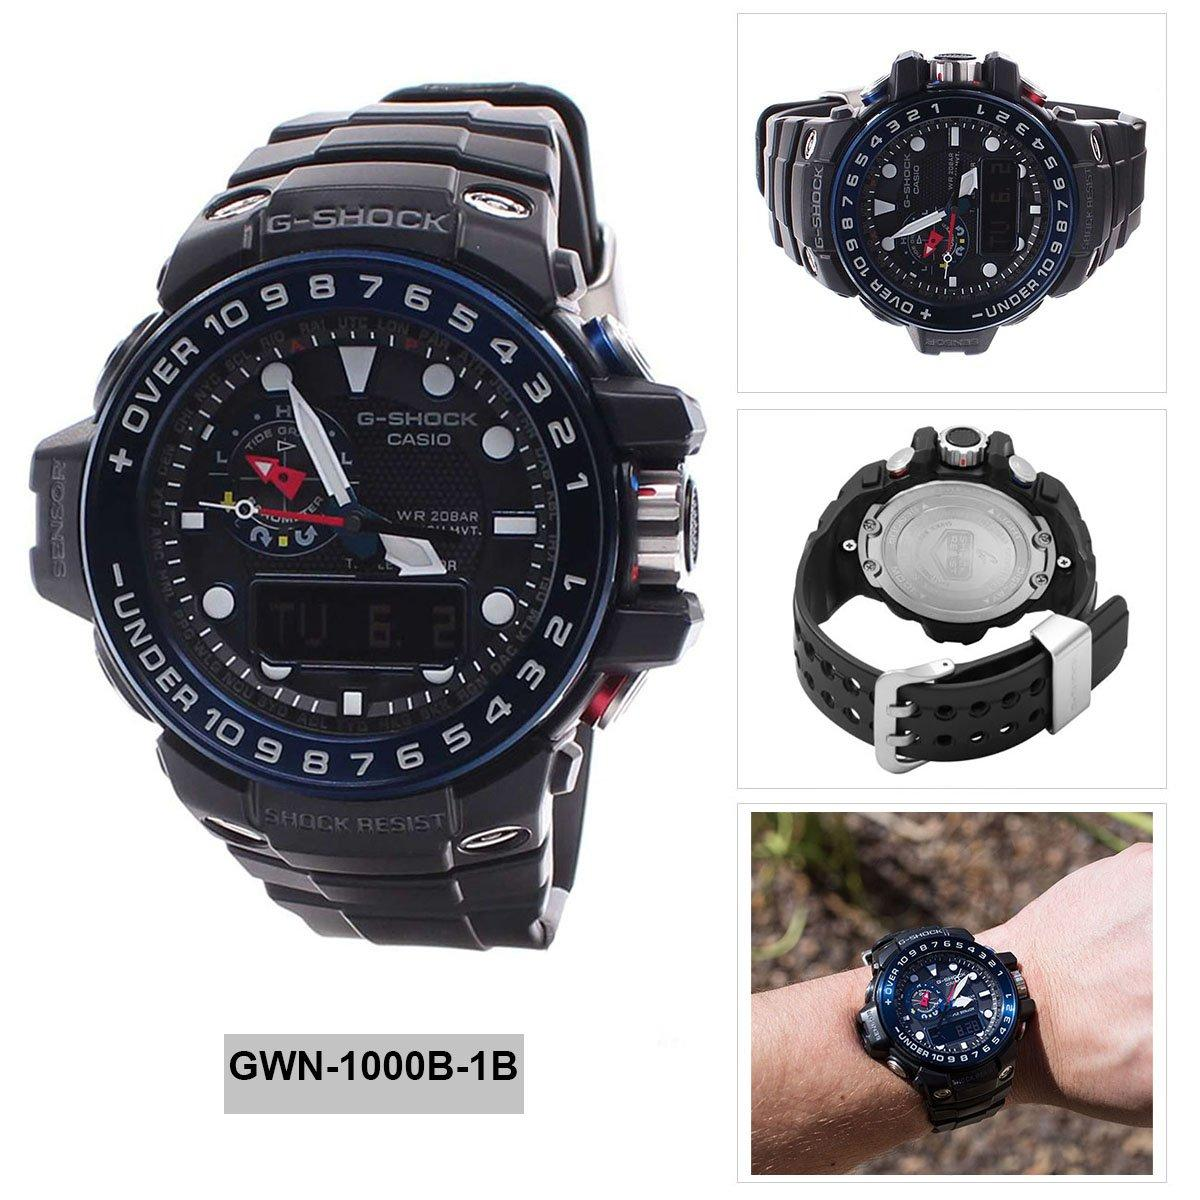 Compare Price Casio Watch G Shock Gulfmaster Black Resin Case Resin Strap Mens Gwn 1000B 1B On Singapore